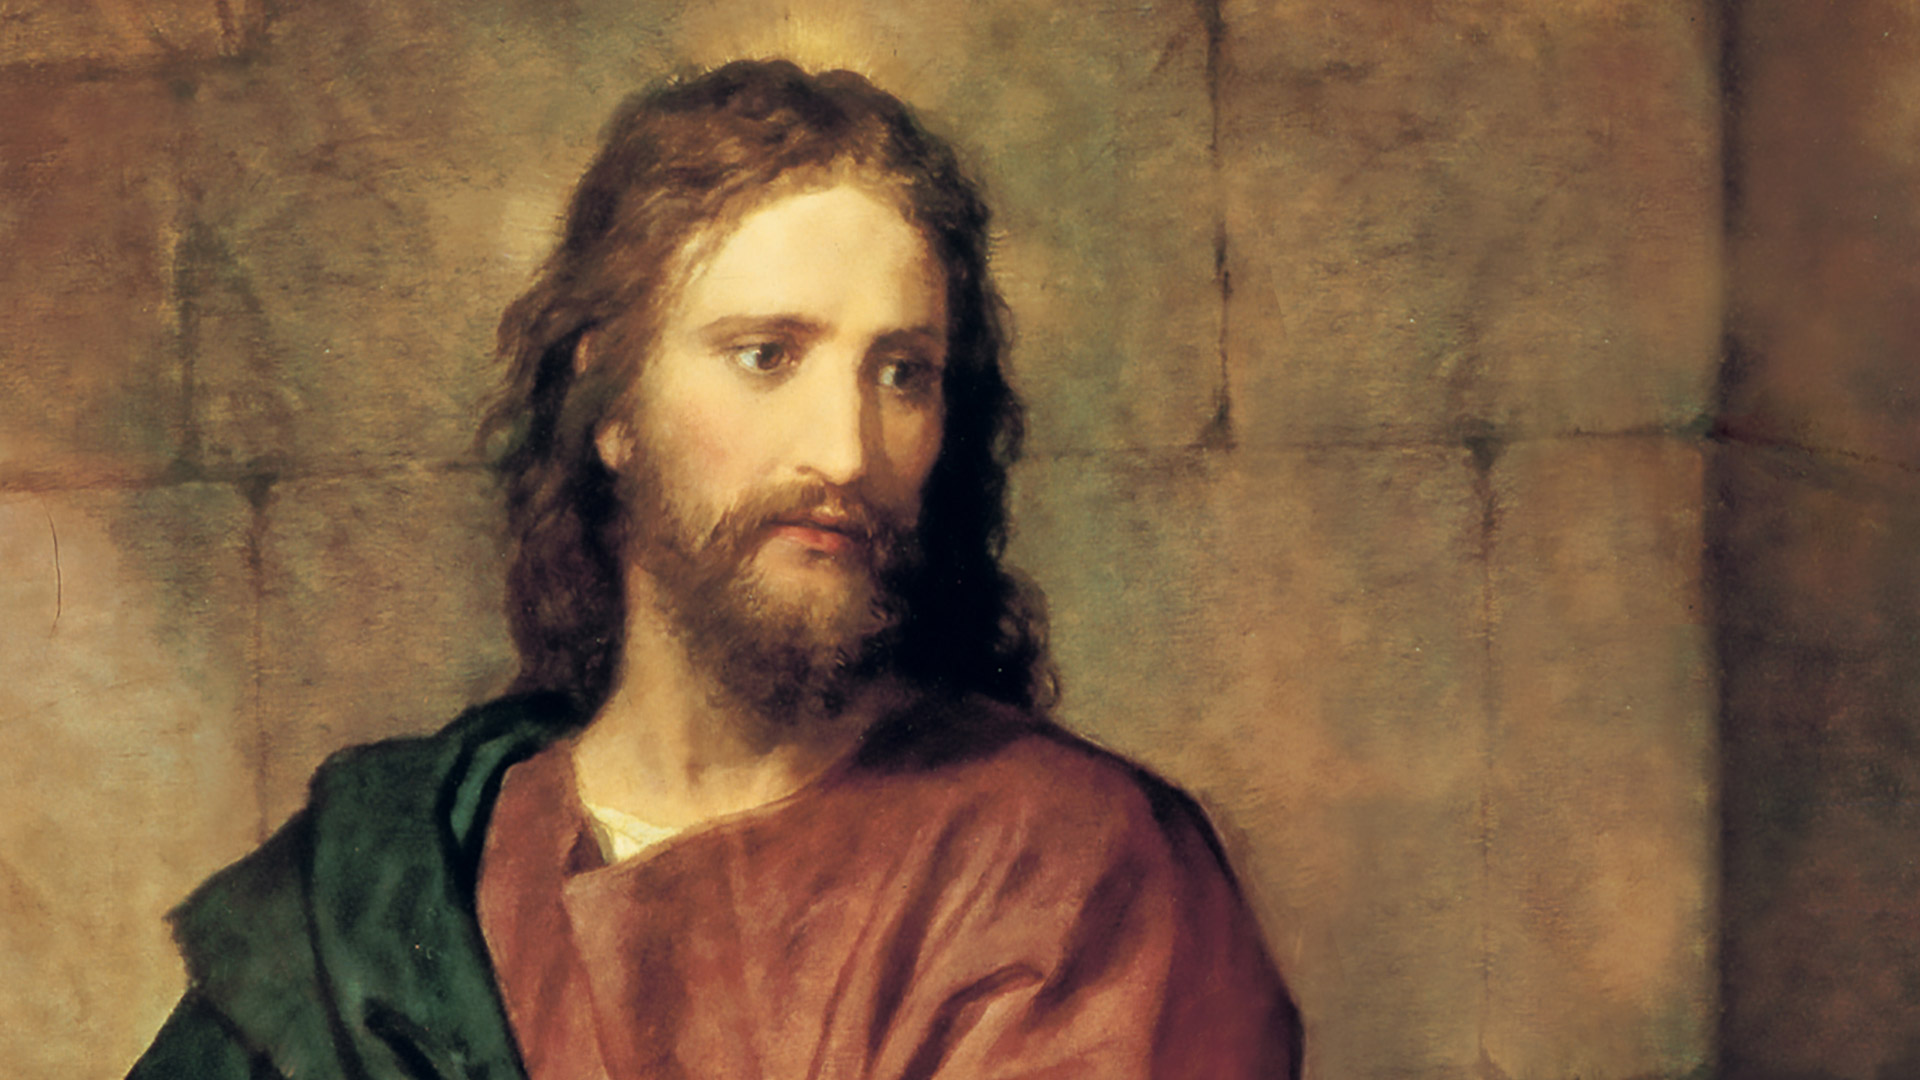 Jesus and the Mystery Religions